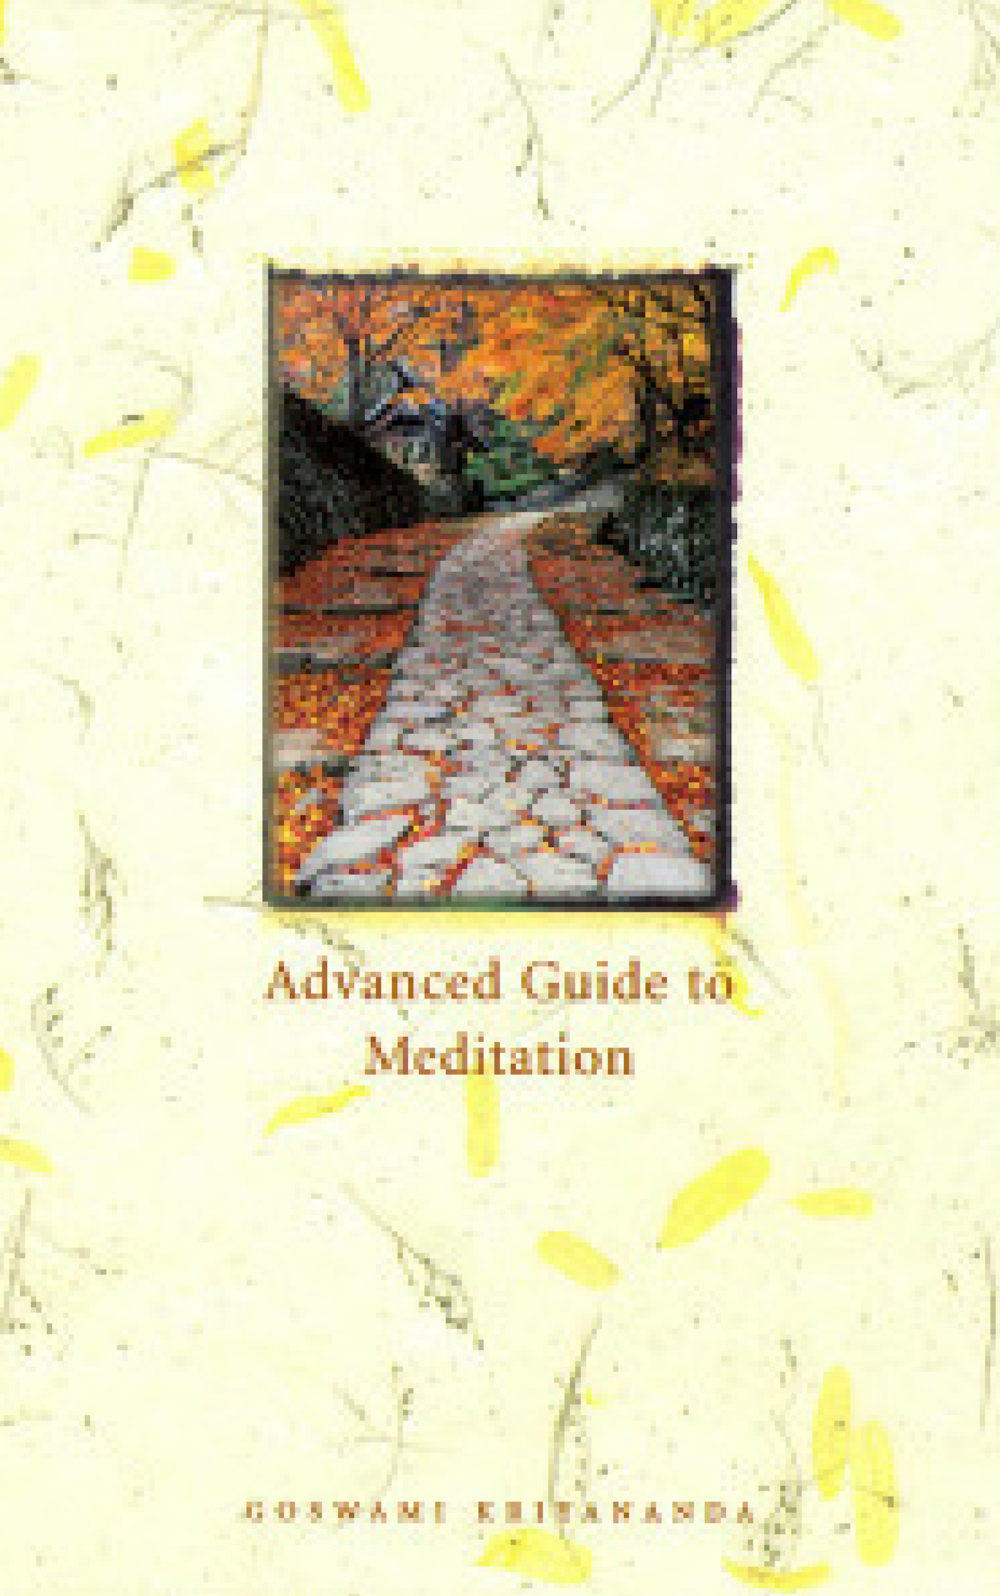 Advanced Guide to Meditation Paperback - $9.50